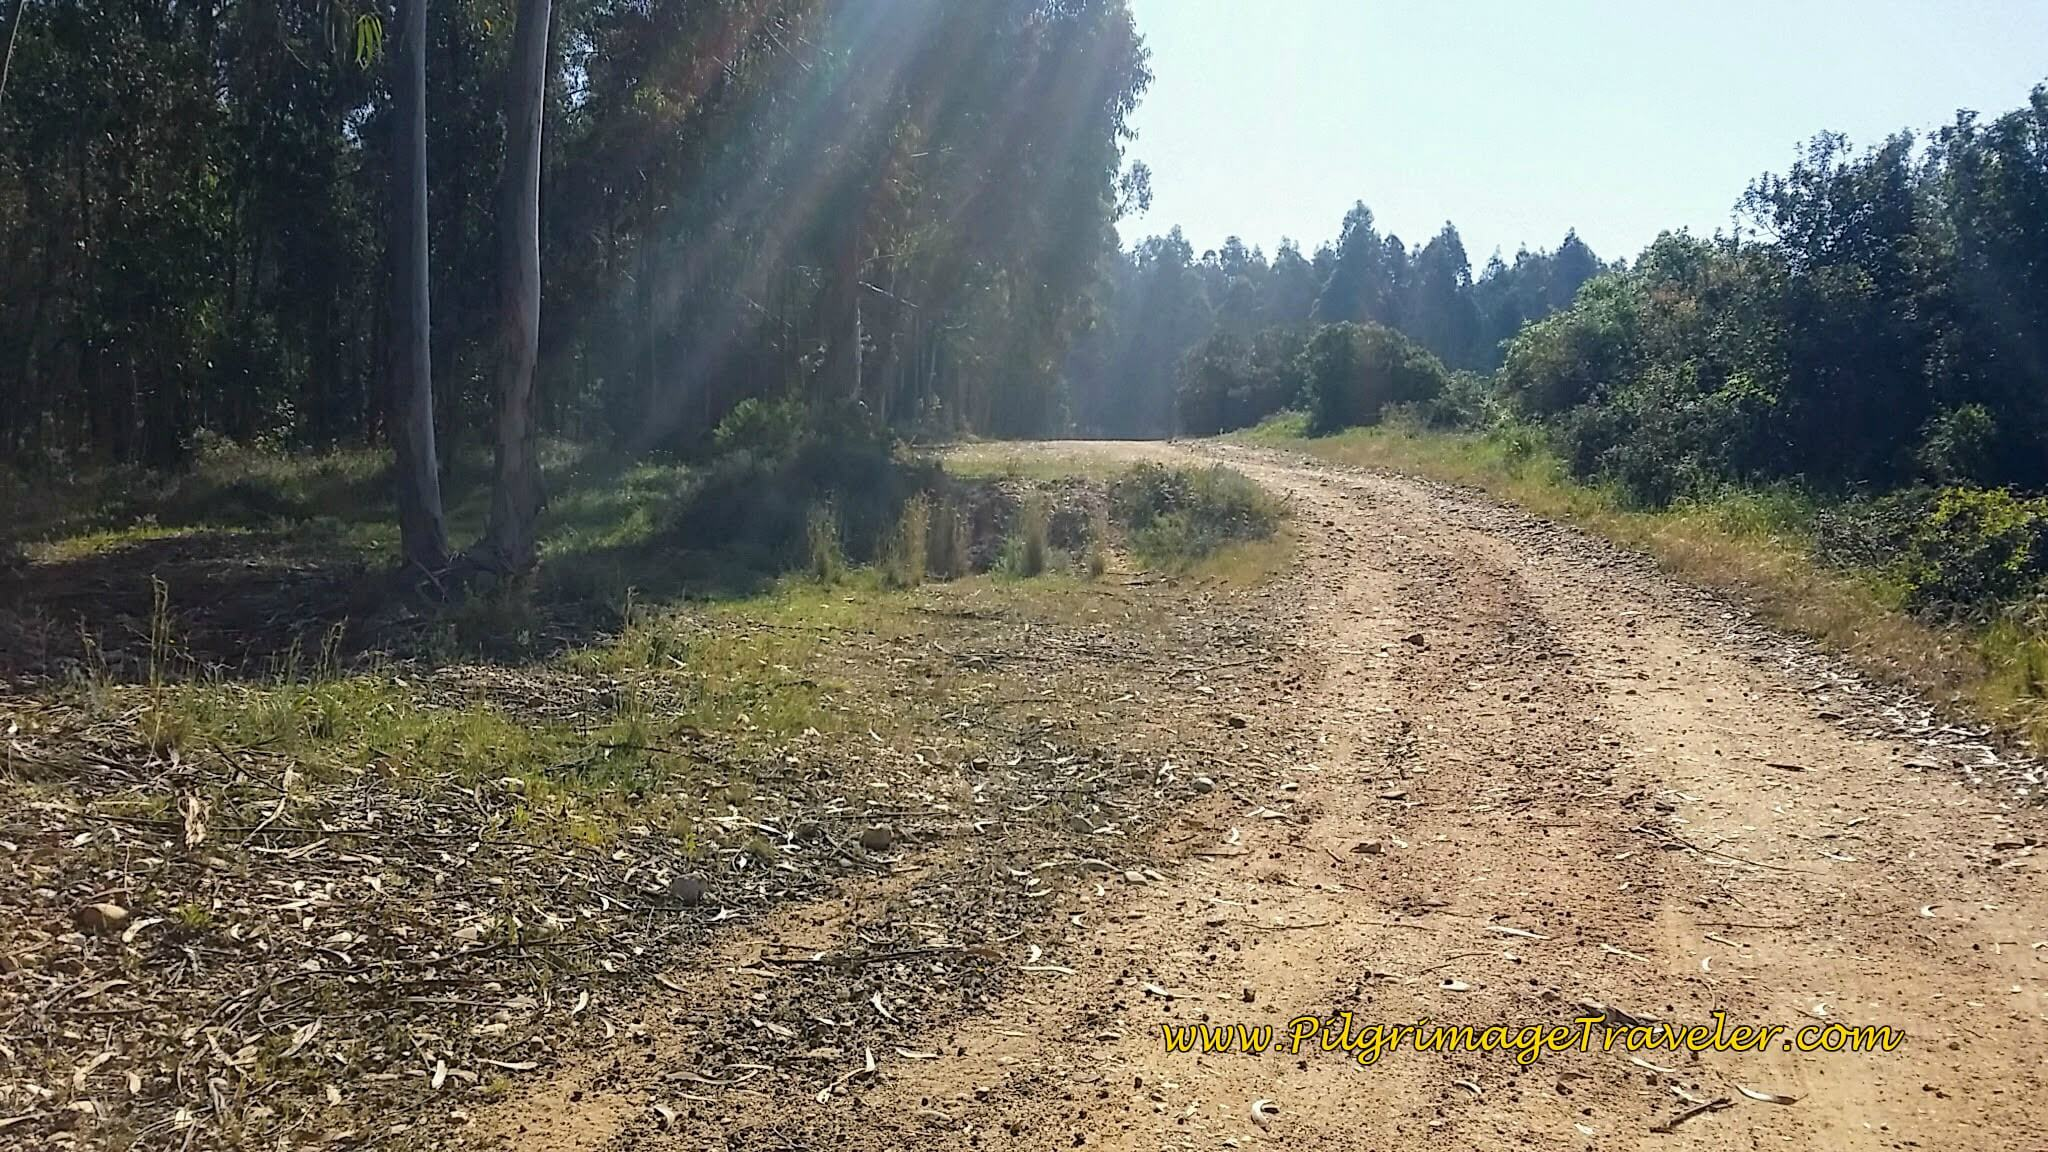 Camino Turns Off N110 and On a Dirt Lane